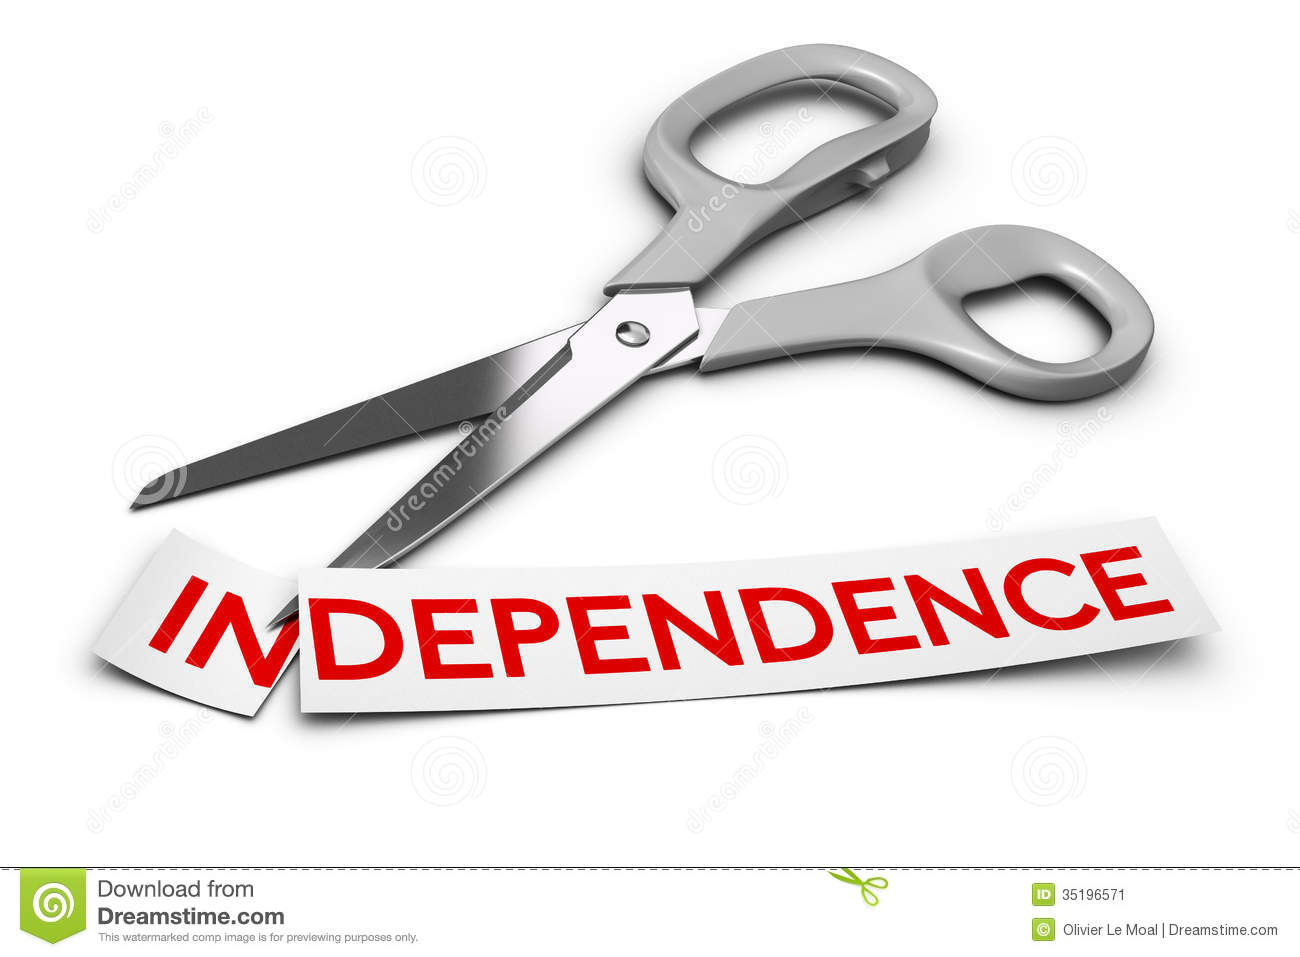 Dependence Vs Independence, Addiction Stock Image.